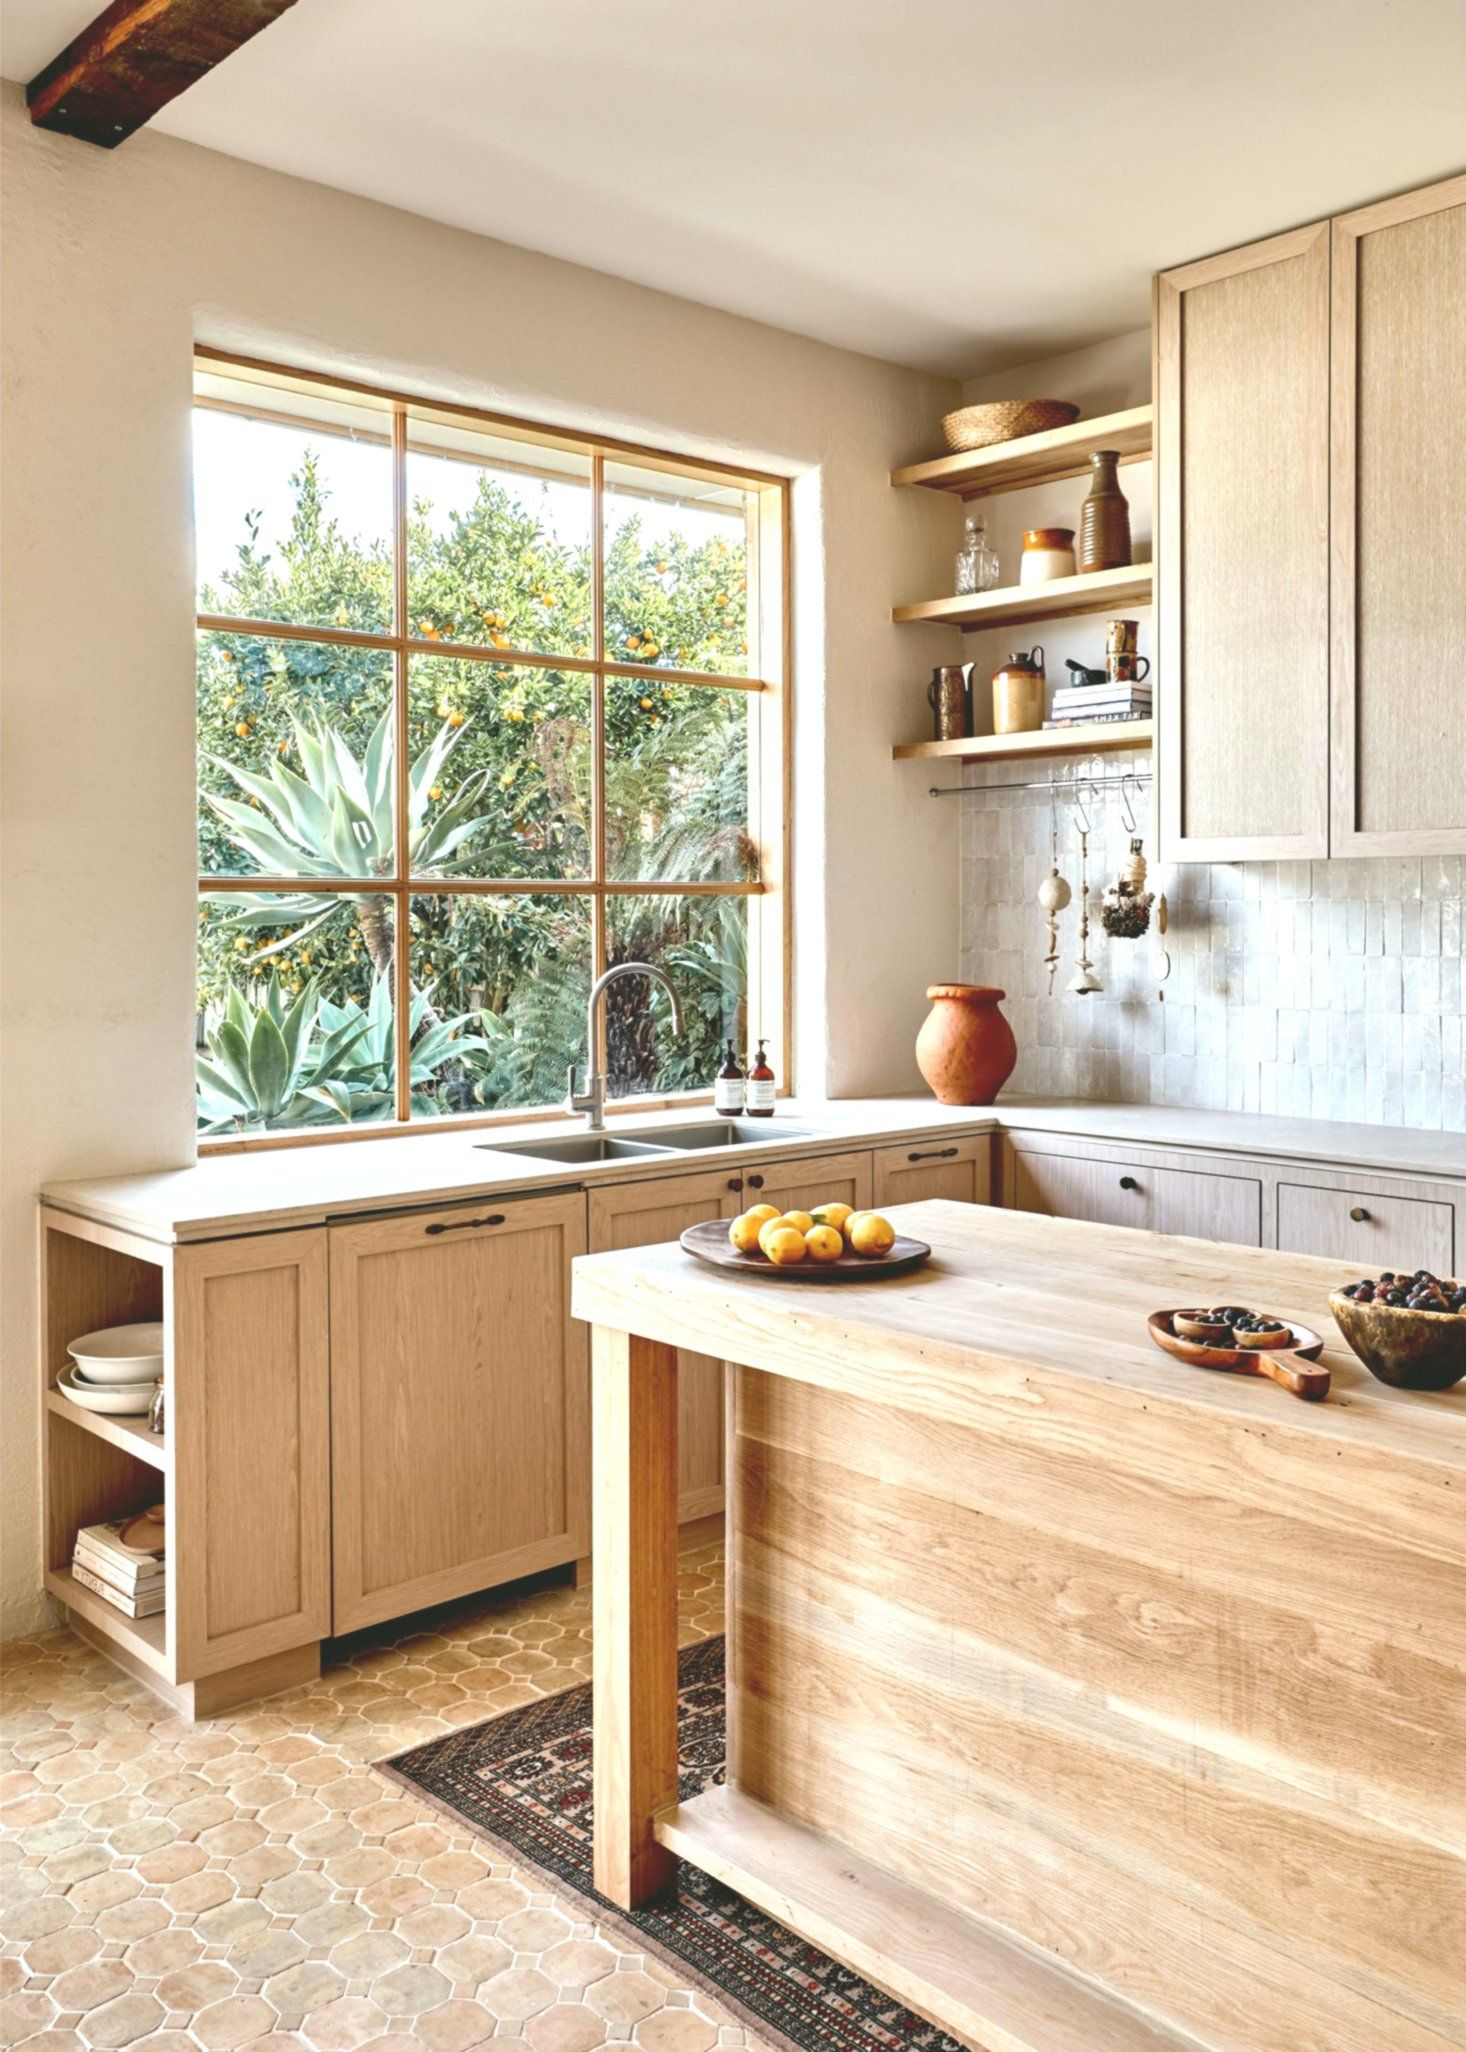 A Modern And Rustic Star Kitchen In Melbourne Australian Home And